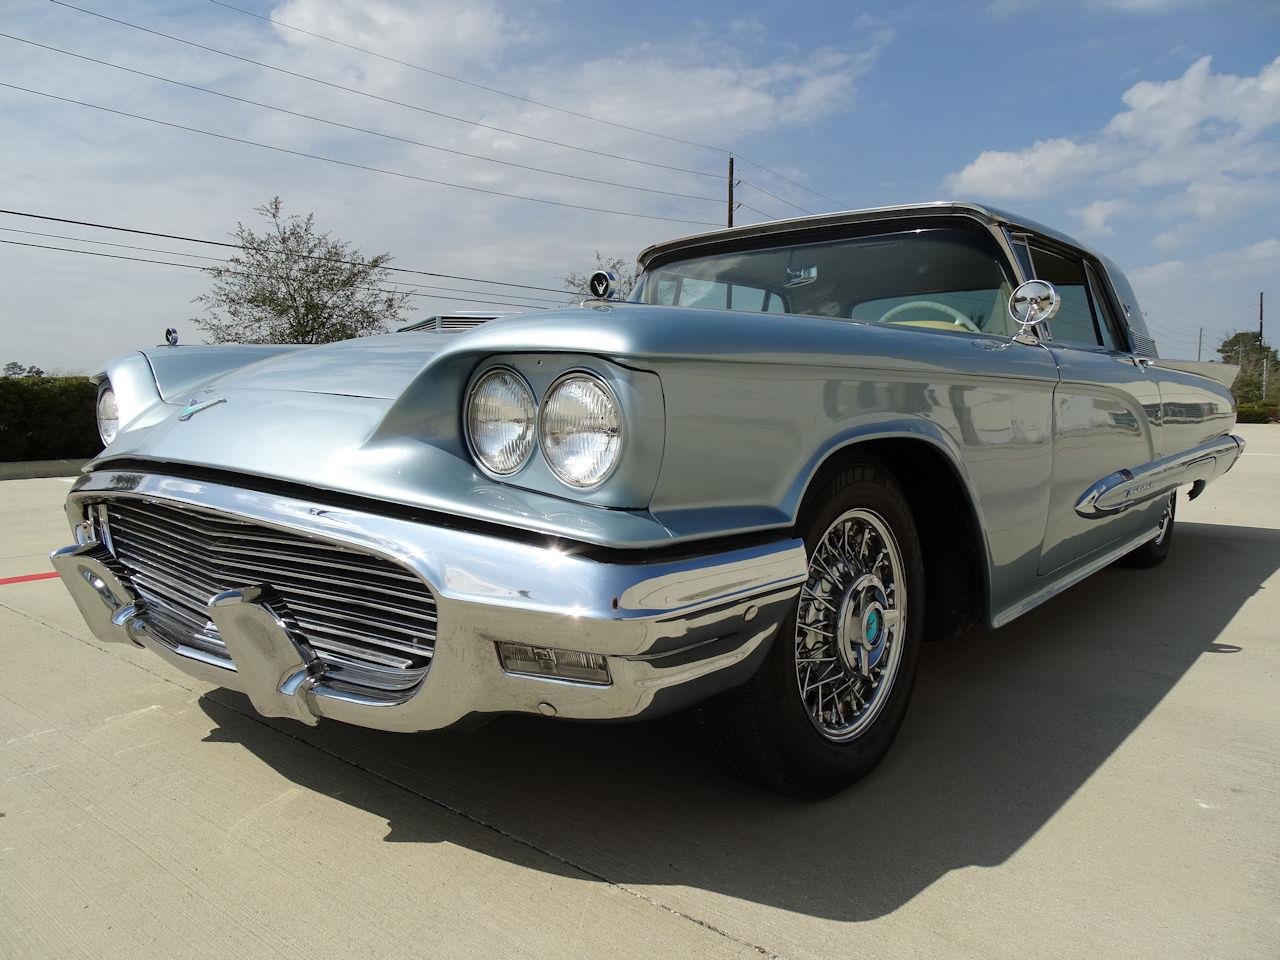 Large Picture of '59 Ford Thunderbird located in Houston Texas - $26,995.00 Offered by Gateway Classic Cars - Houston - MZEG